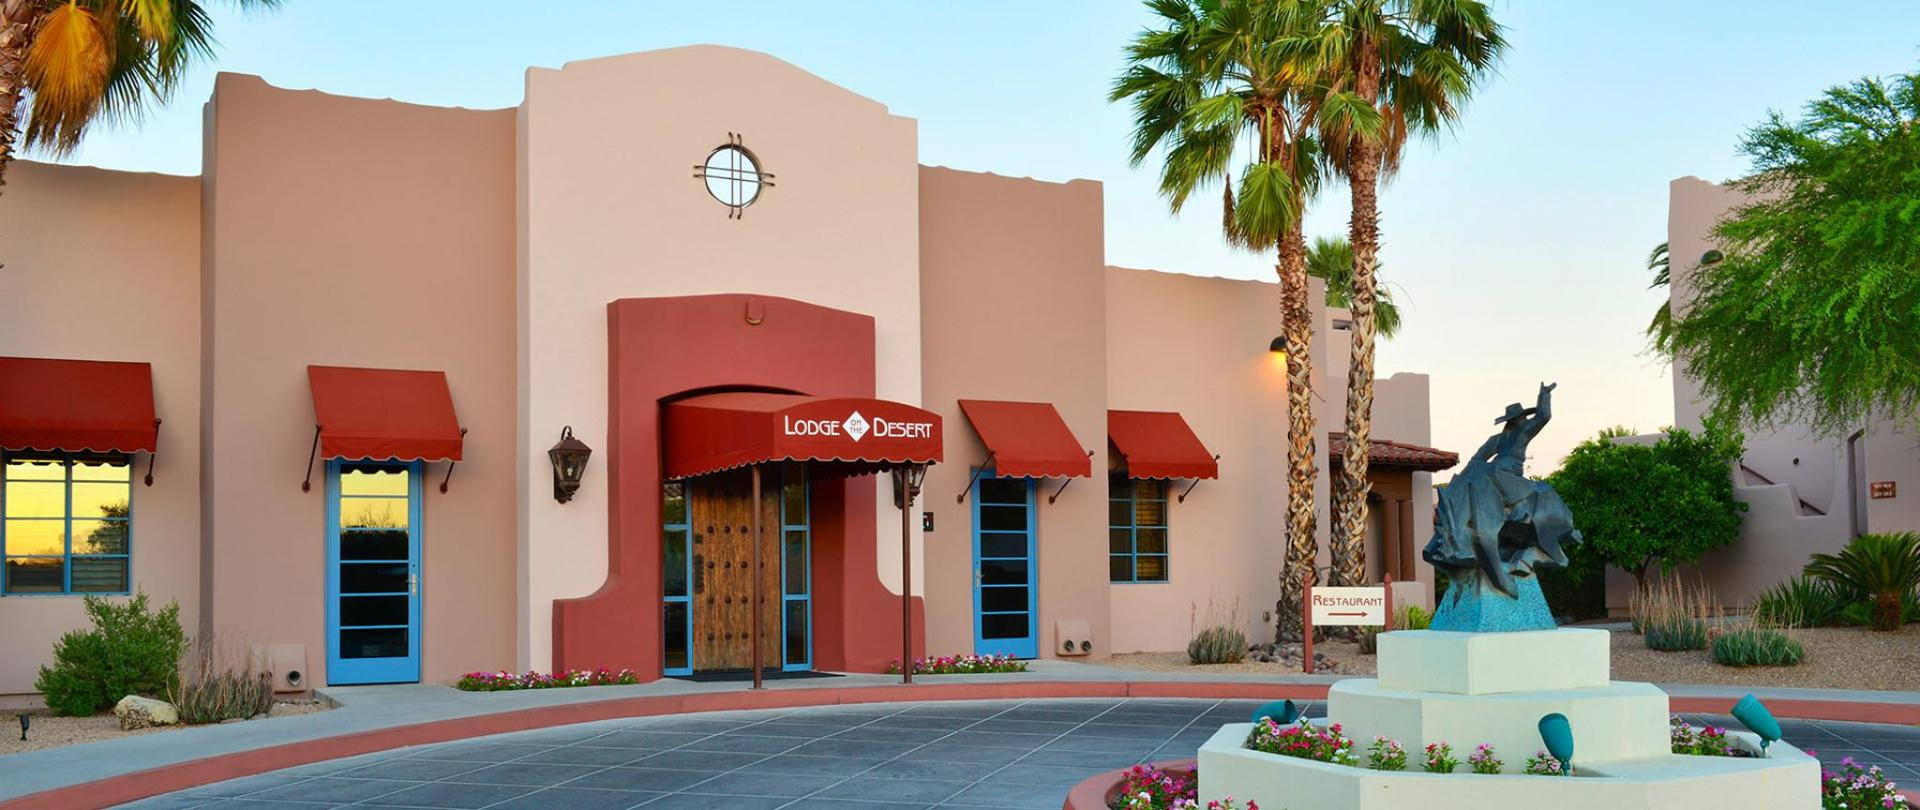 Tucson Boutique Hotels Lodge On The Desert Historic